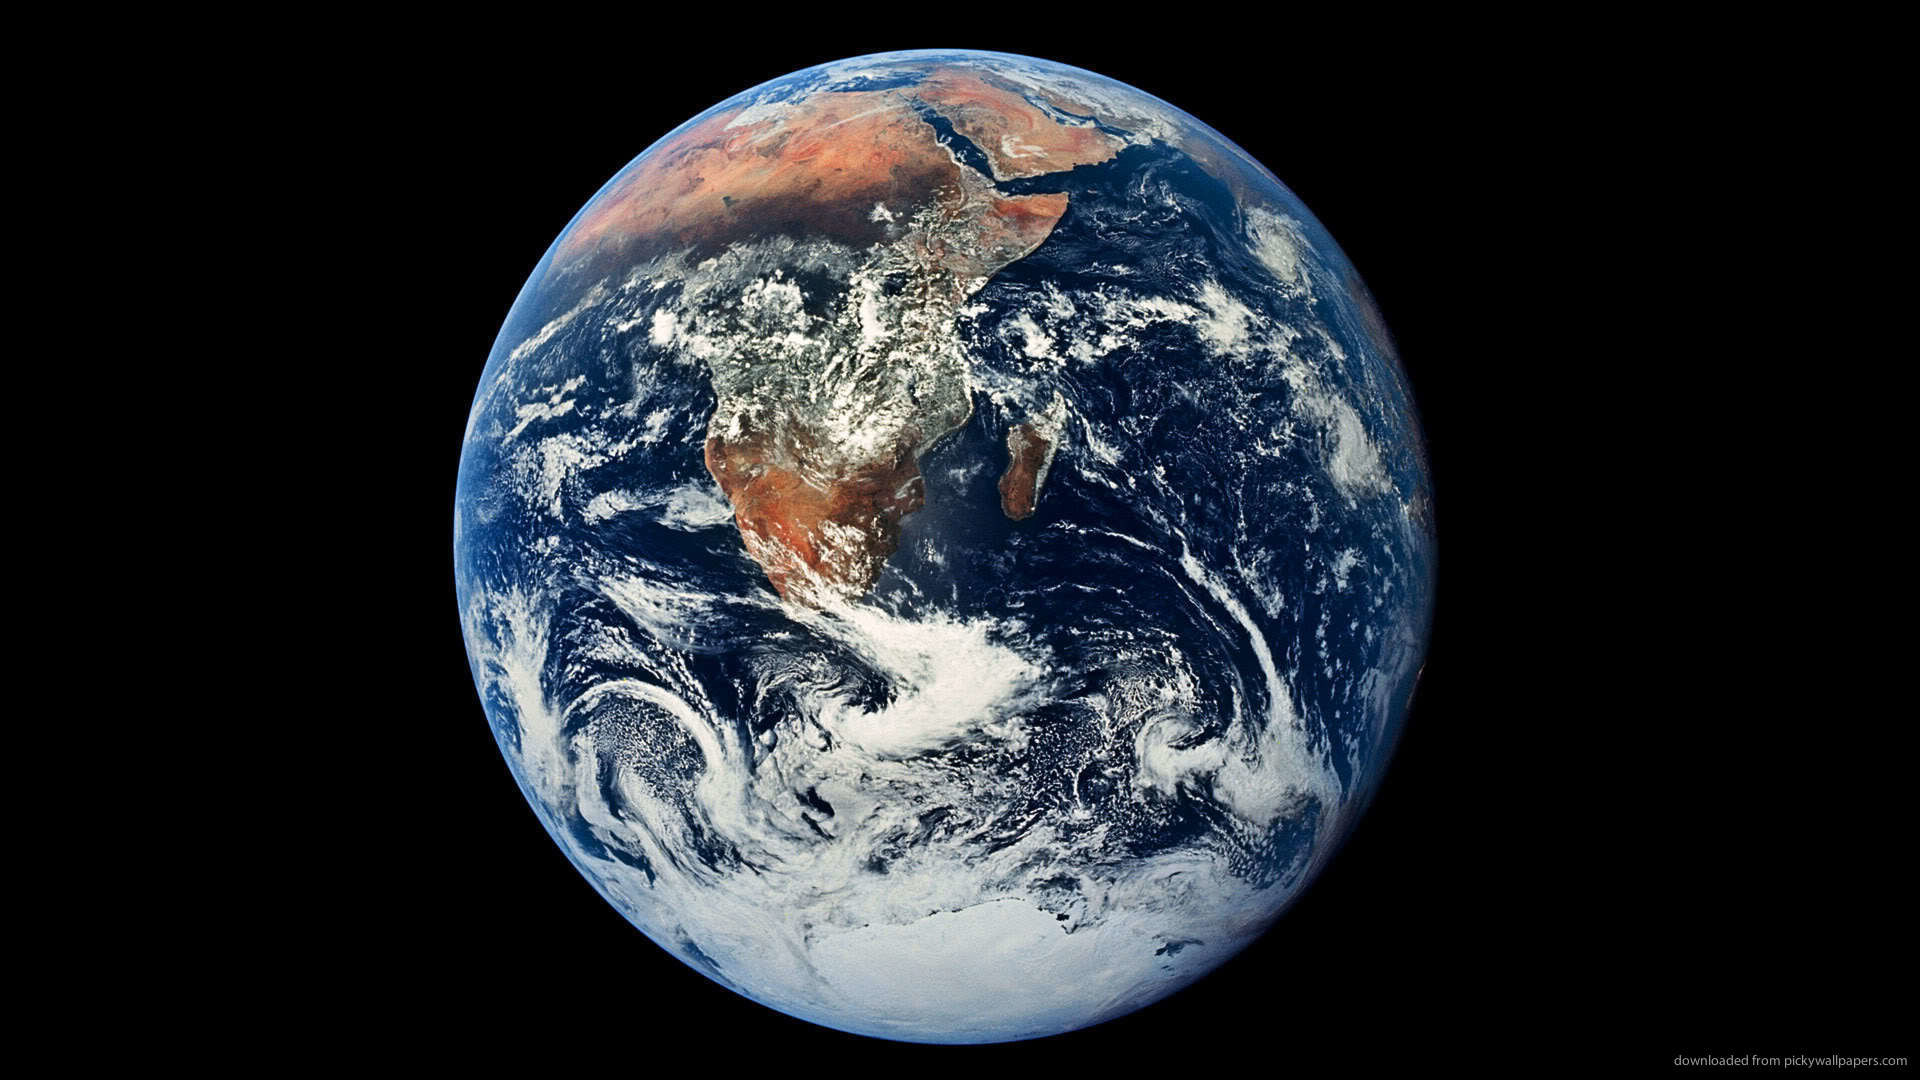 The Earth picture